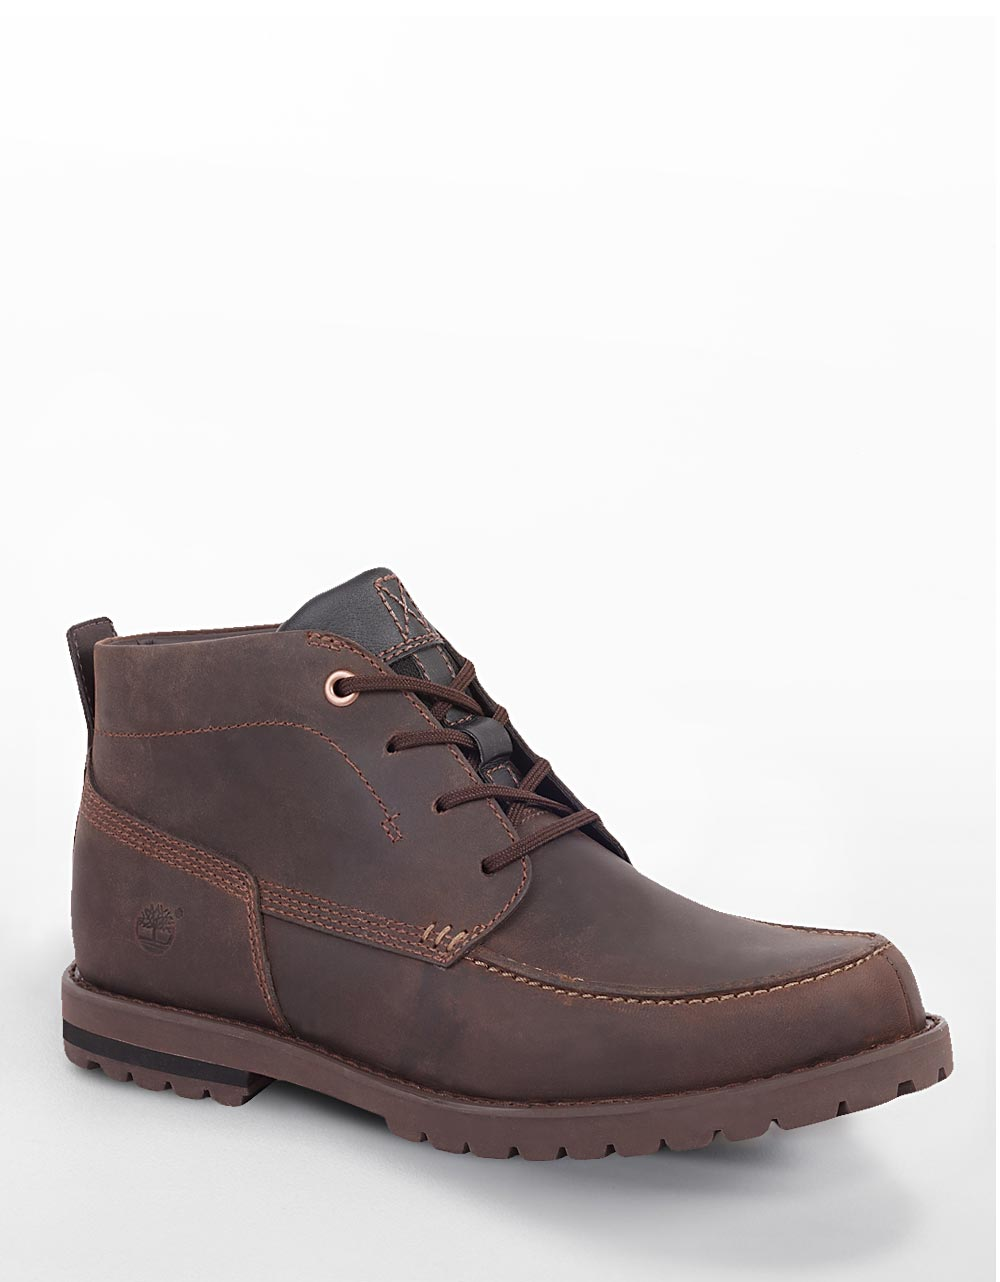 mens lace up brown leather boots national sheriffs